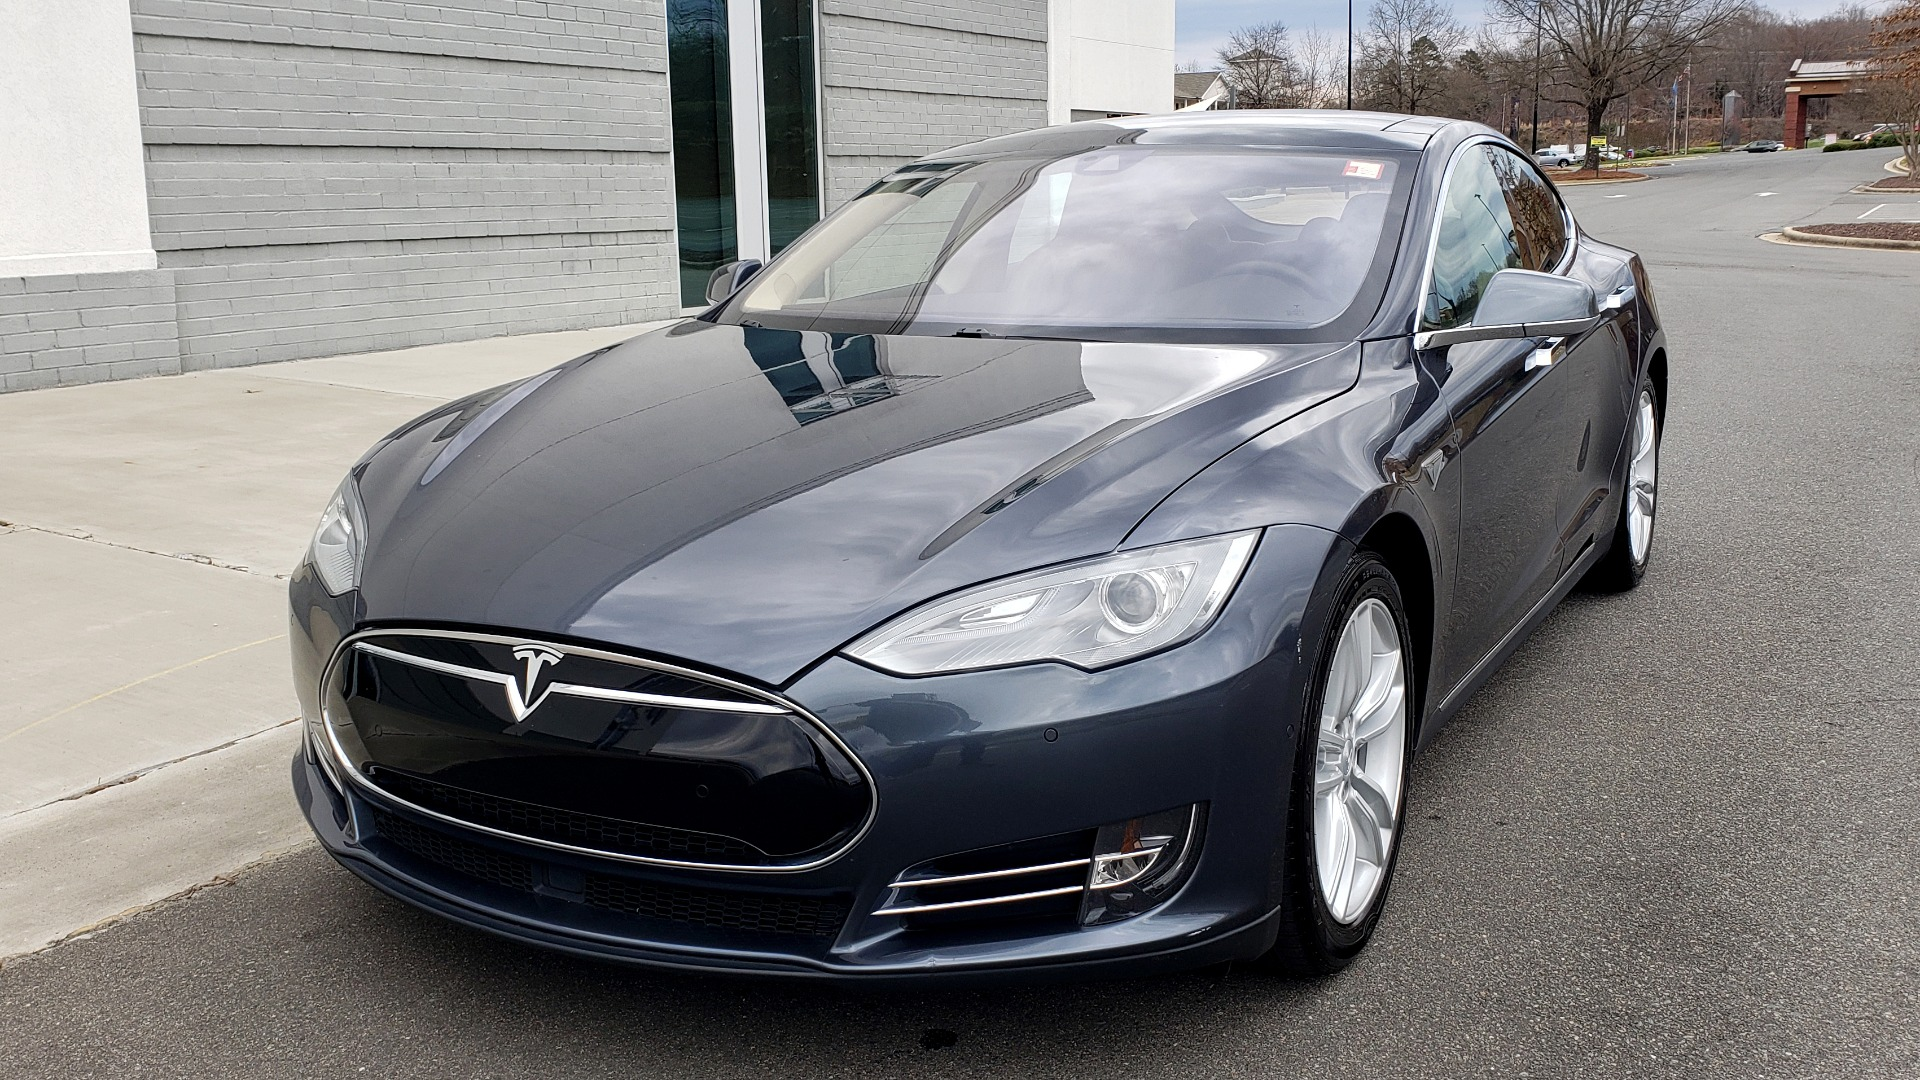 Used 2014 Tesla MODEL S 60 kWh BATTERY / TECH / NAV / SUBZERO / SUNROOF / REARVIEW for sale Sold at Formula Imports in Charlotte NC 28227 3